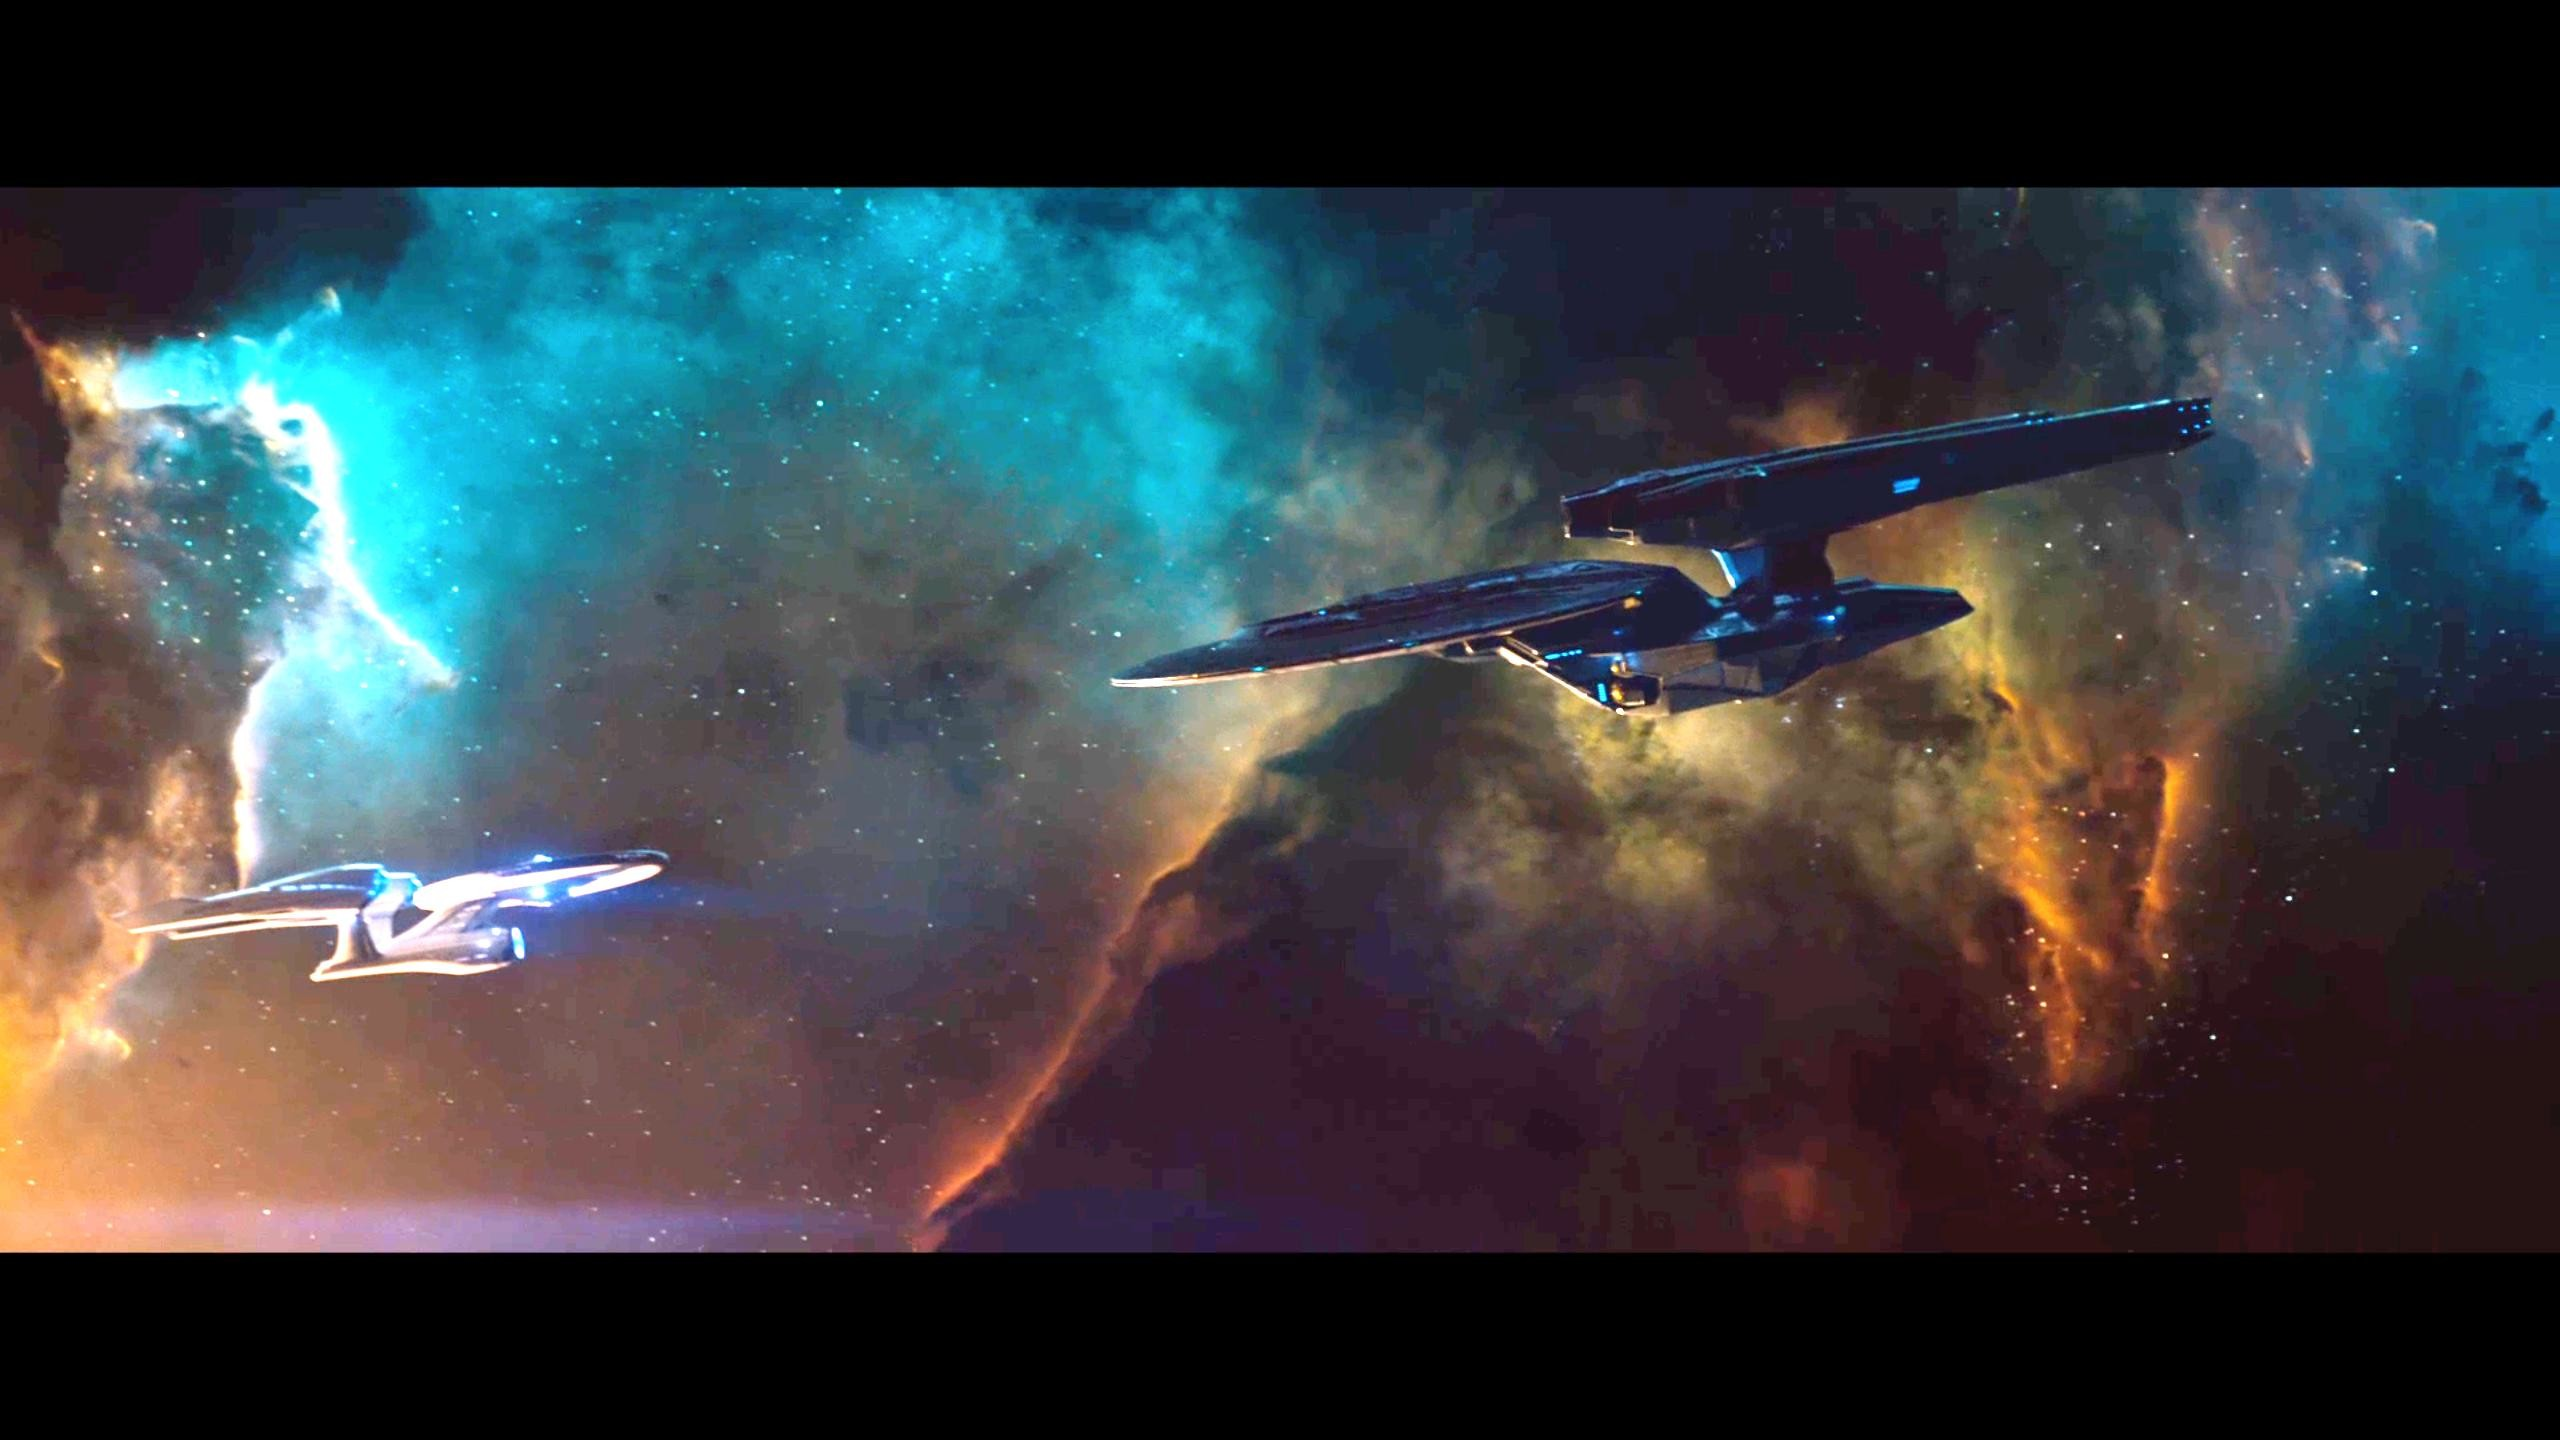 2560x1440 Star Trek HD Wallpaper 16 - 2560 X 1440